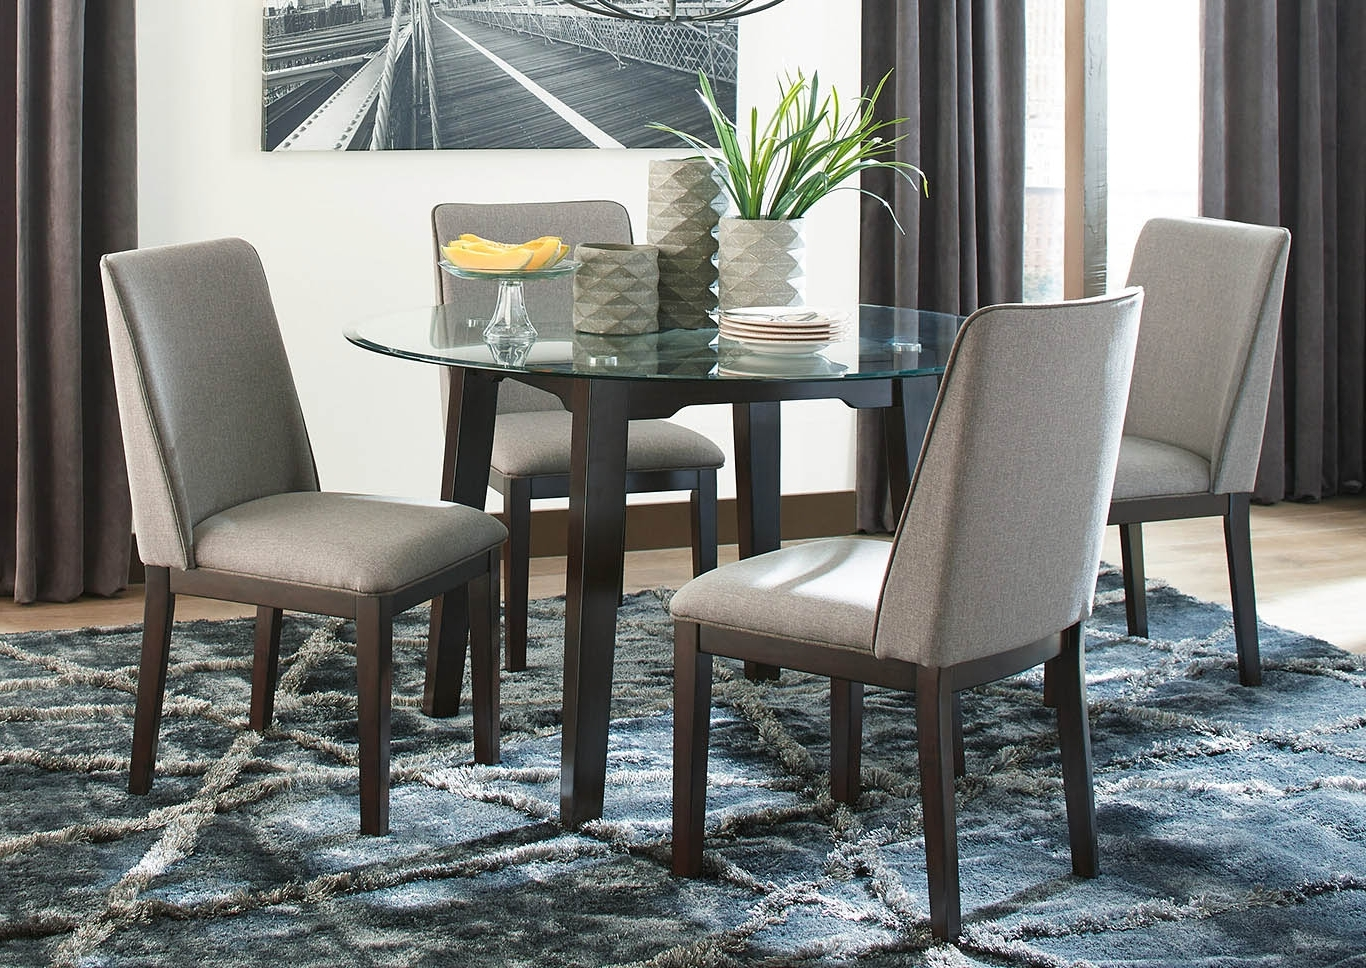 Widely Used Craftsman 5 Piece Round Dining Sets With Uph Side Chairs Intended For Southside Furniture Chanceen 5 Piece Dining Room Set (View 3 of 25)